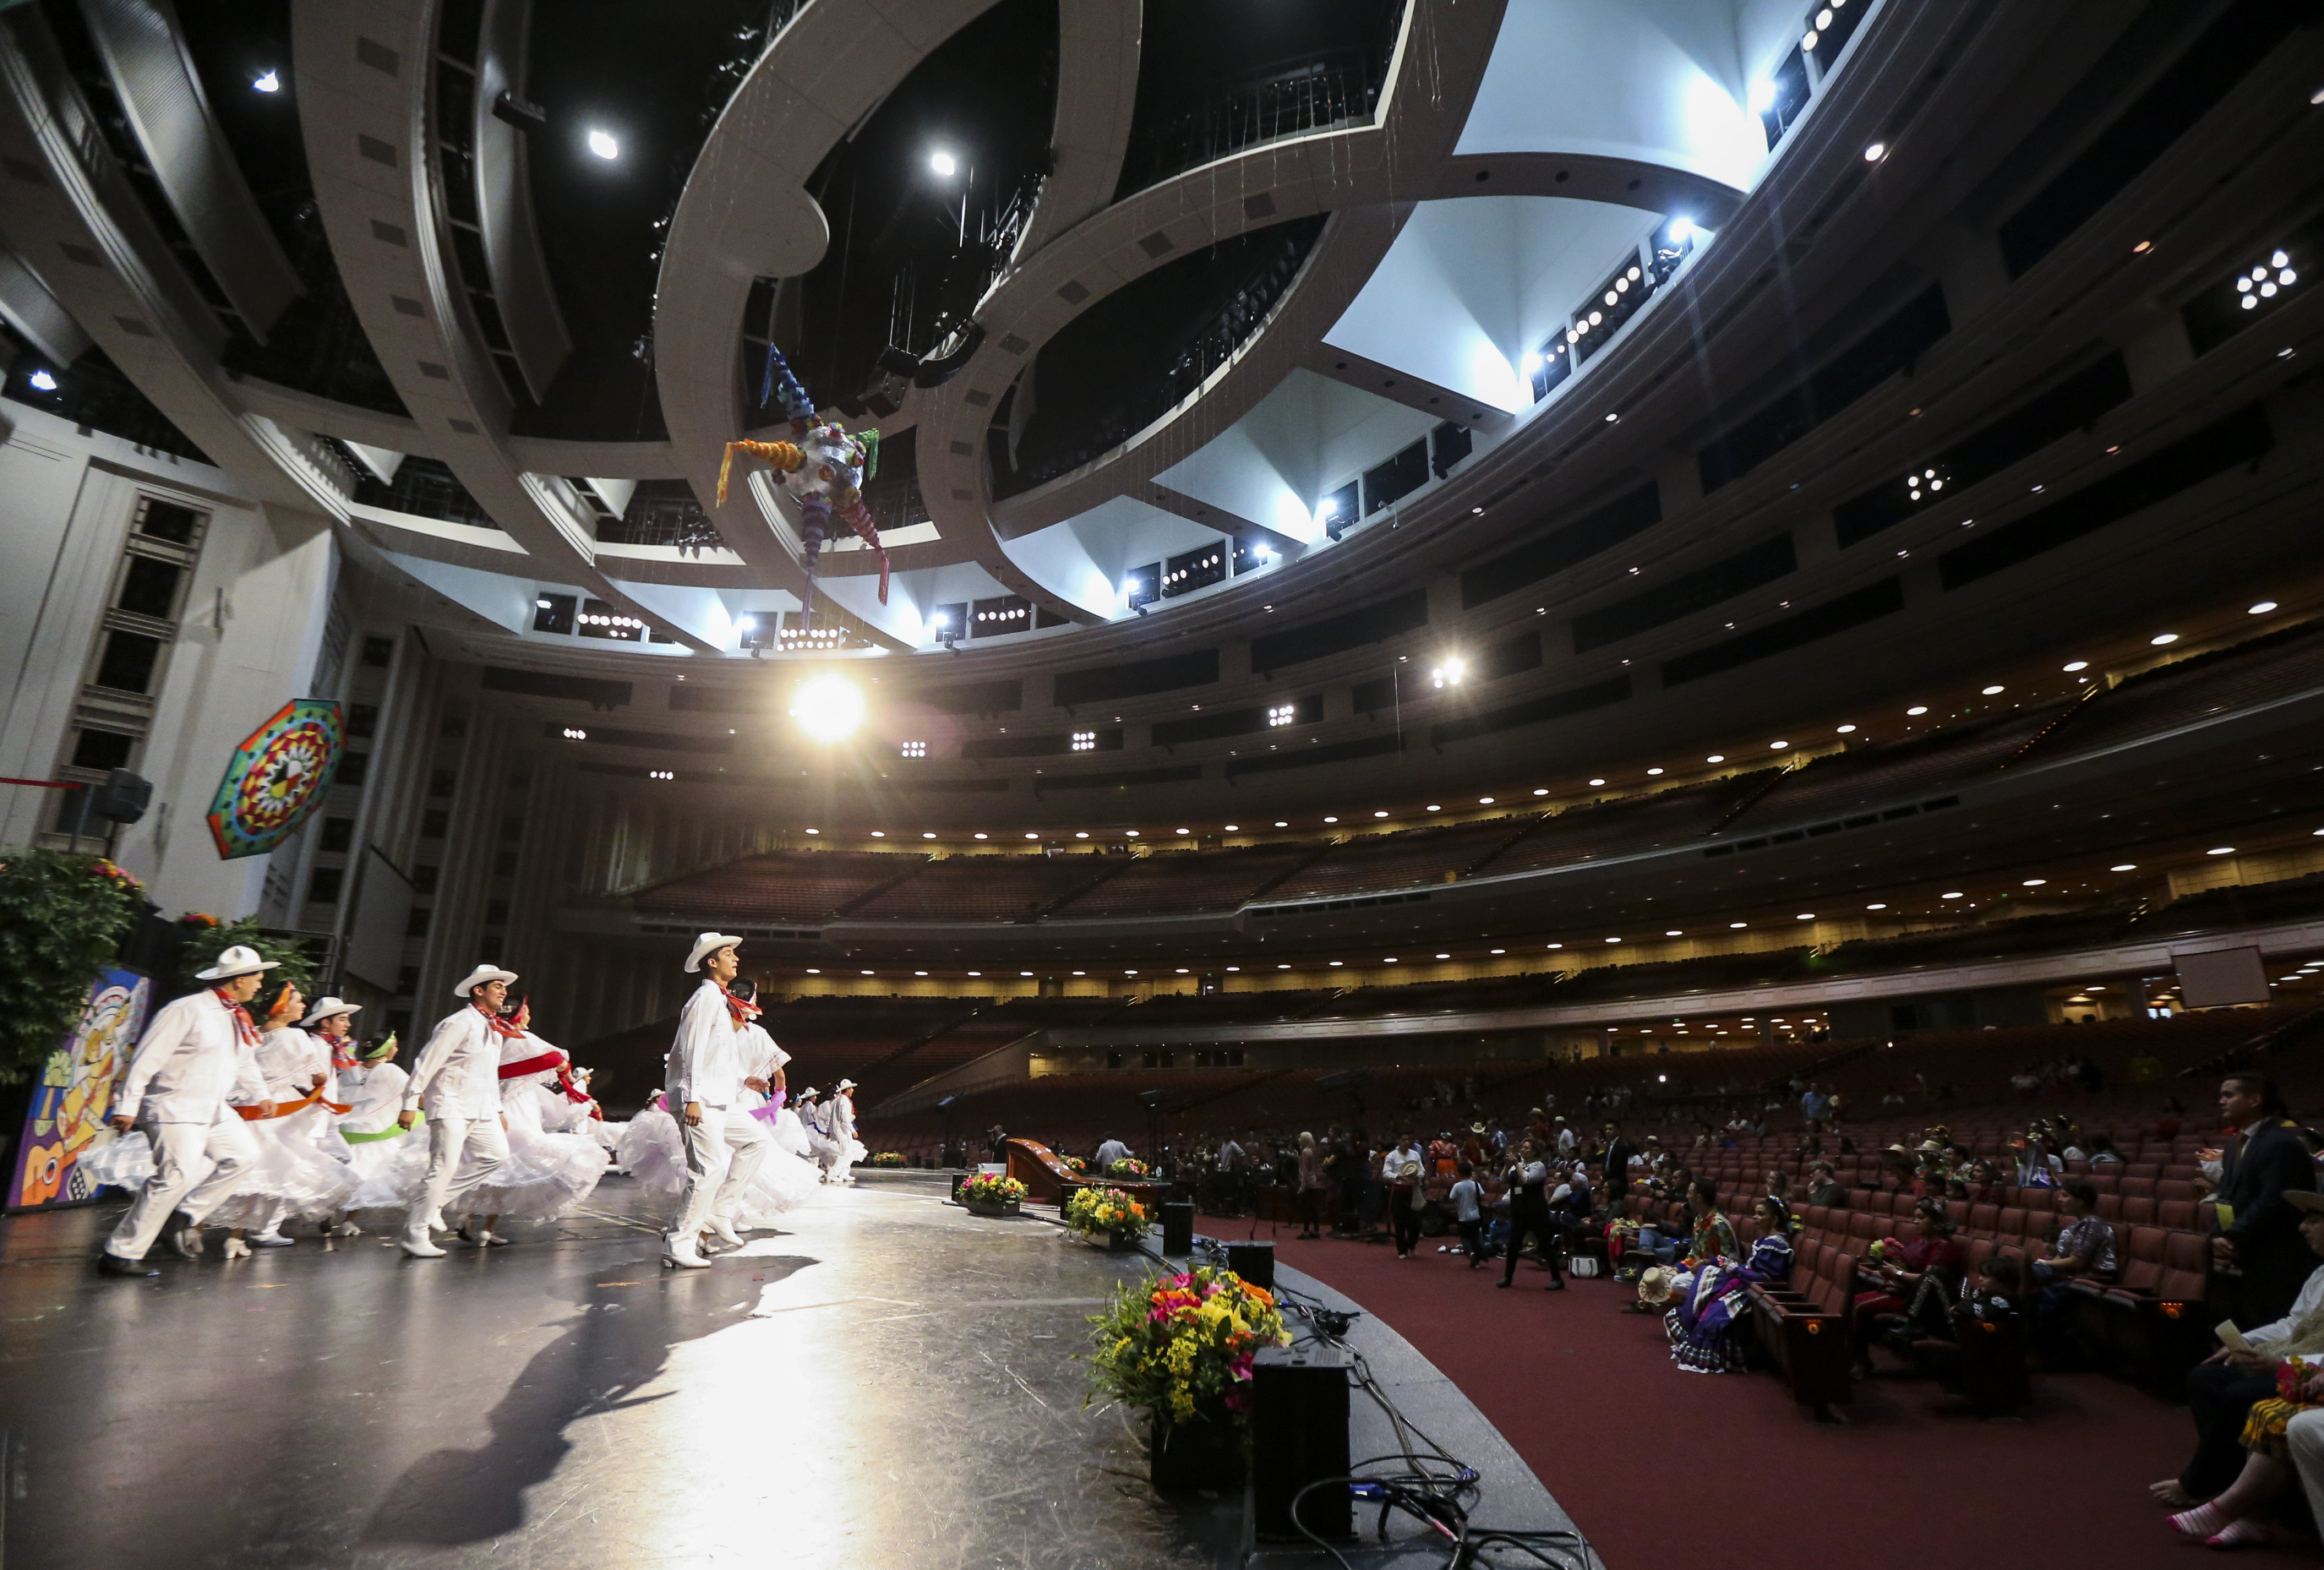 Dancers perform during the dress rehearsal of the Mexican dance La Iguana for the Luz de las Naciones performance at the Conference Center in Salt Lake City on Saturday, Oct. 26, 2019.